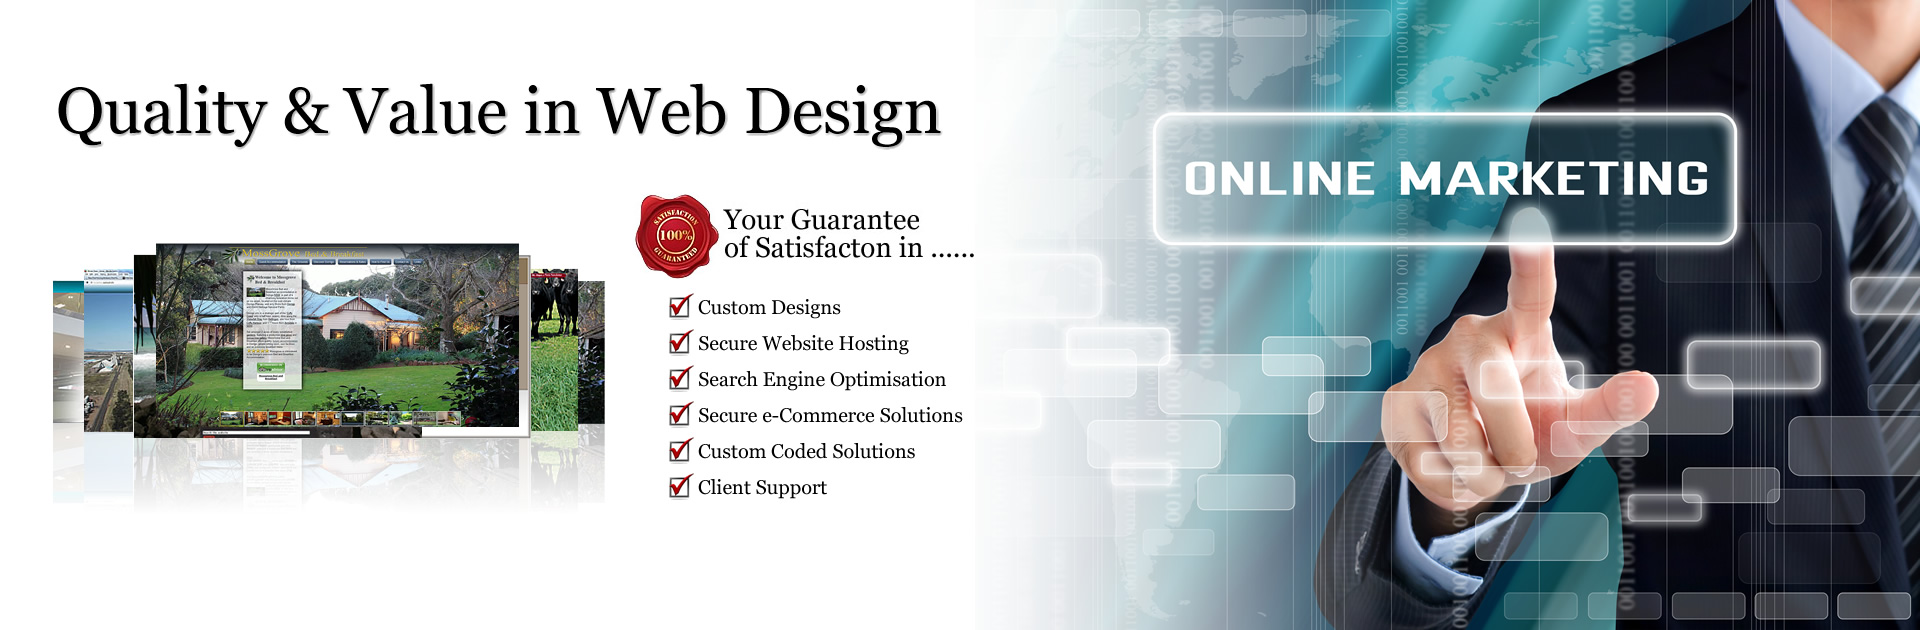 web-design-marketing-01